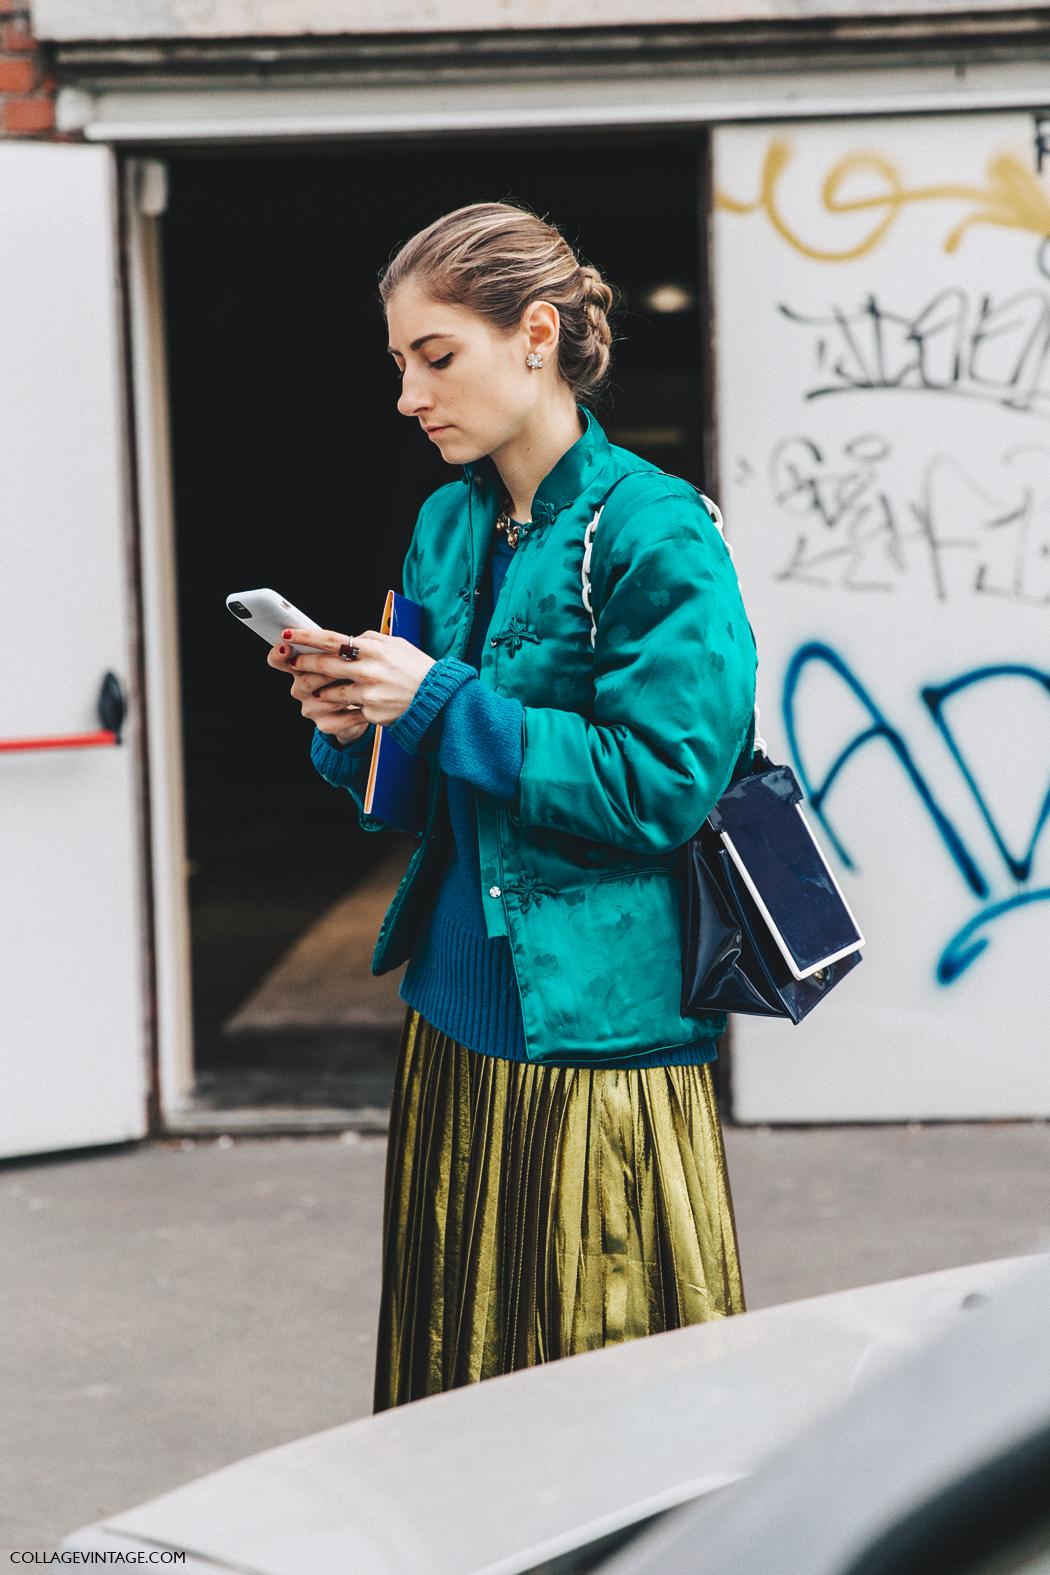 Milan_Fashion_Week_Fall_16-MFW-Street_Style-Collage_Vintage-Vintage_Jacket-Gucci_Skirt-Prada_Boots-